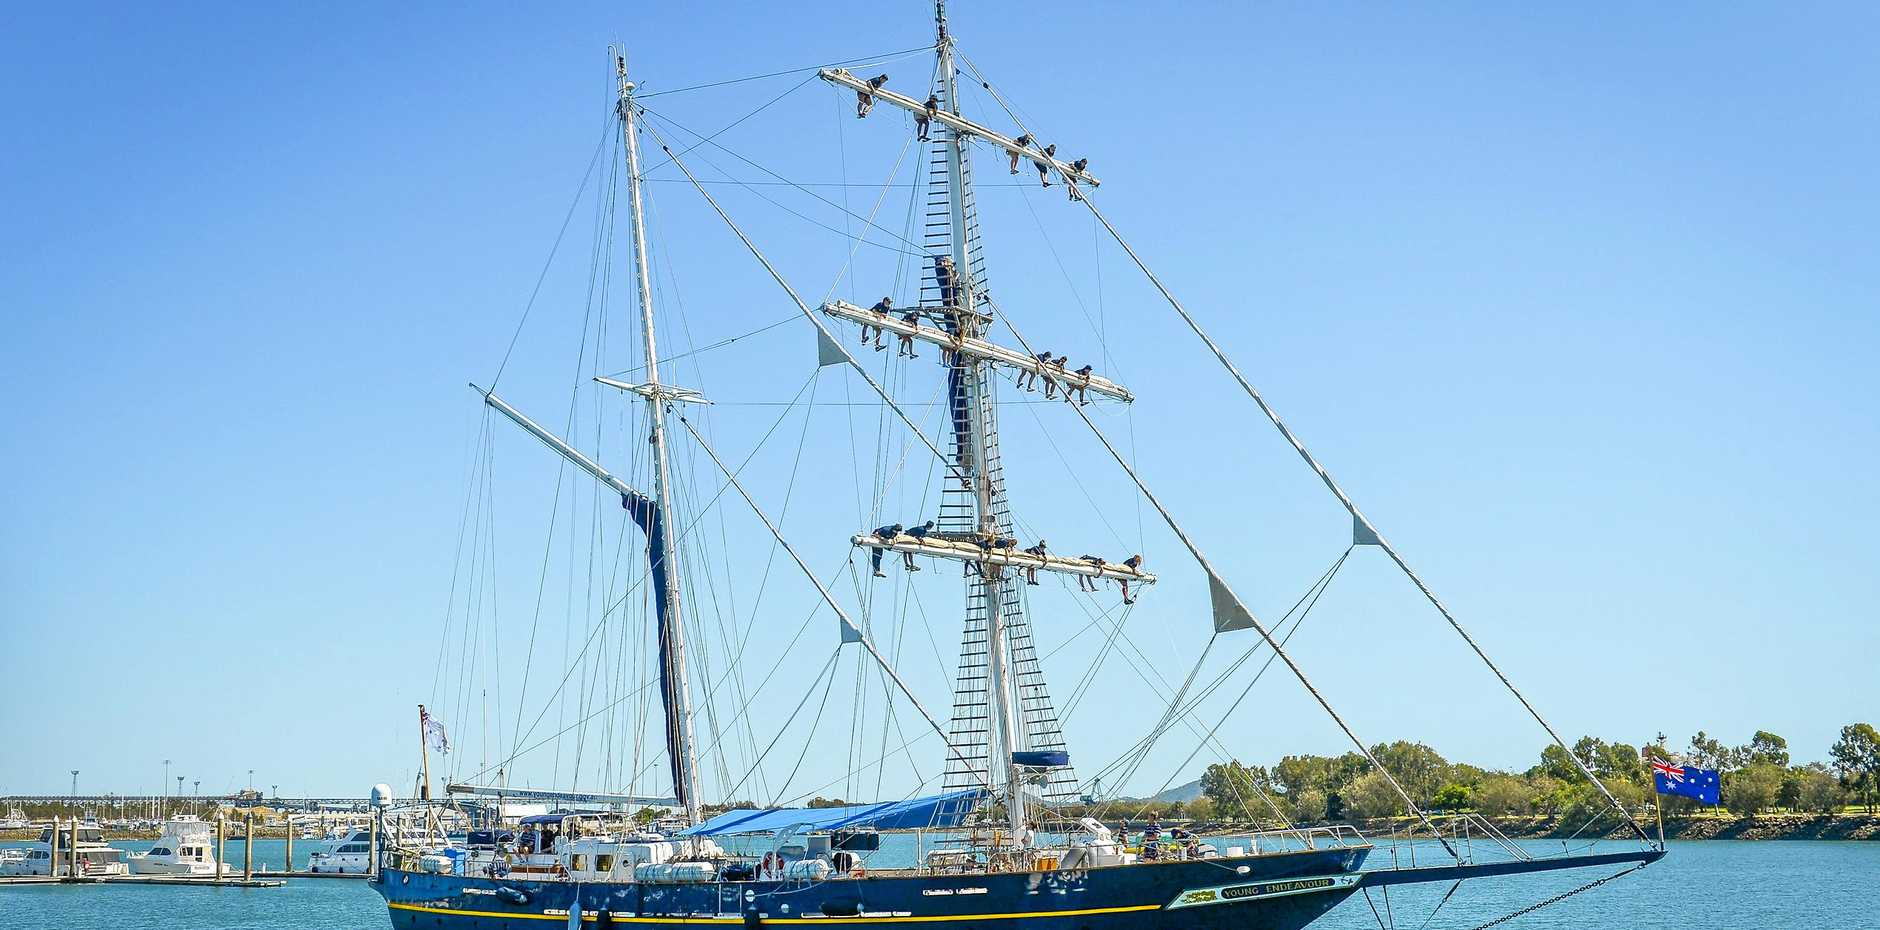 ANCHORS AWAY: The  Young Endeavour will be making port in Gladstone Marina next week.